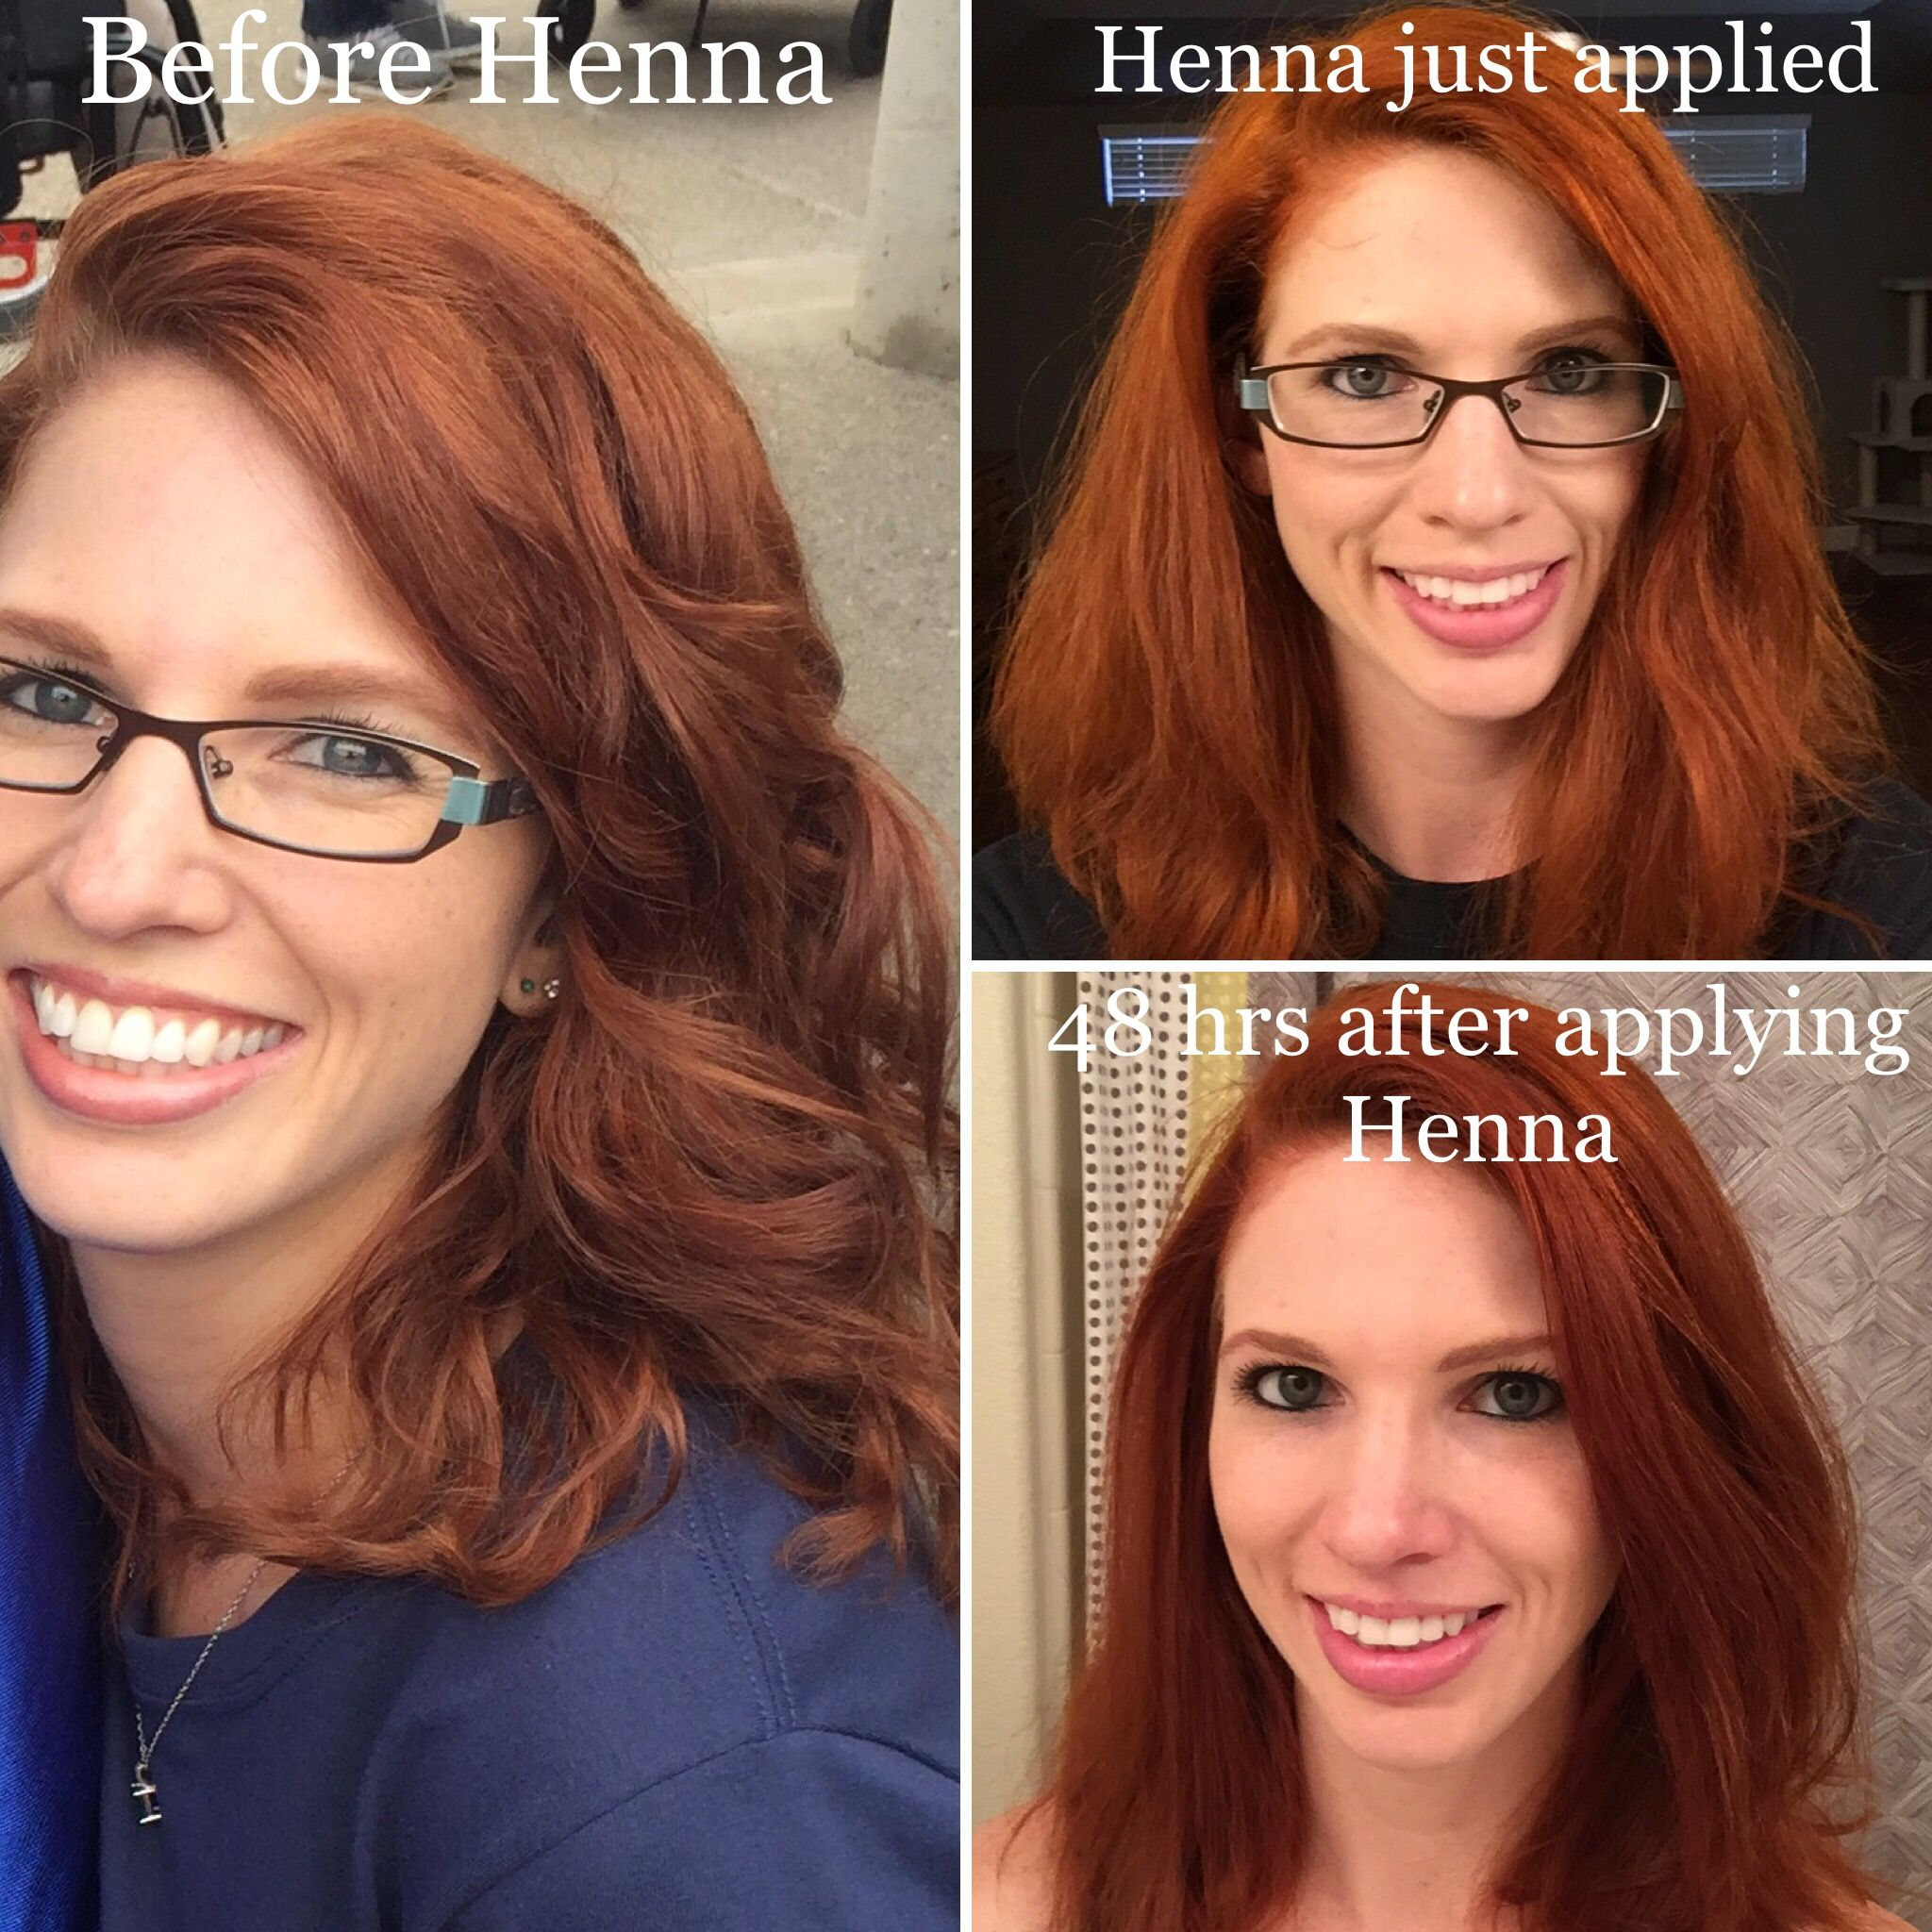 Henna Hair Before And After Pics Plus 48 Hours After To Show Oxidization Change Henna Hair Red Hair Makeup Beautiful Hair